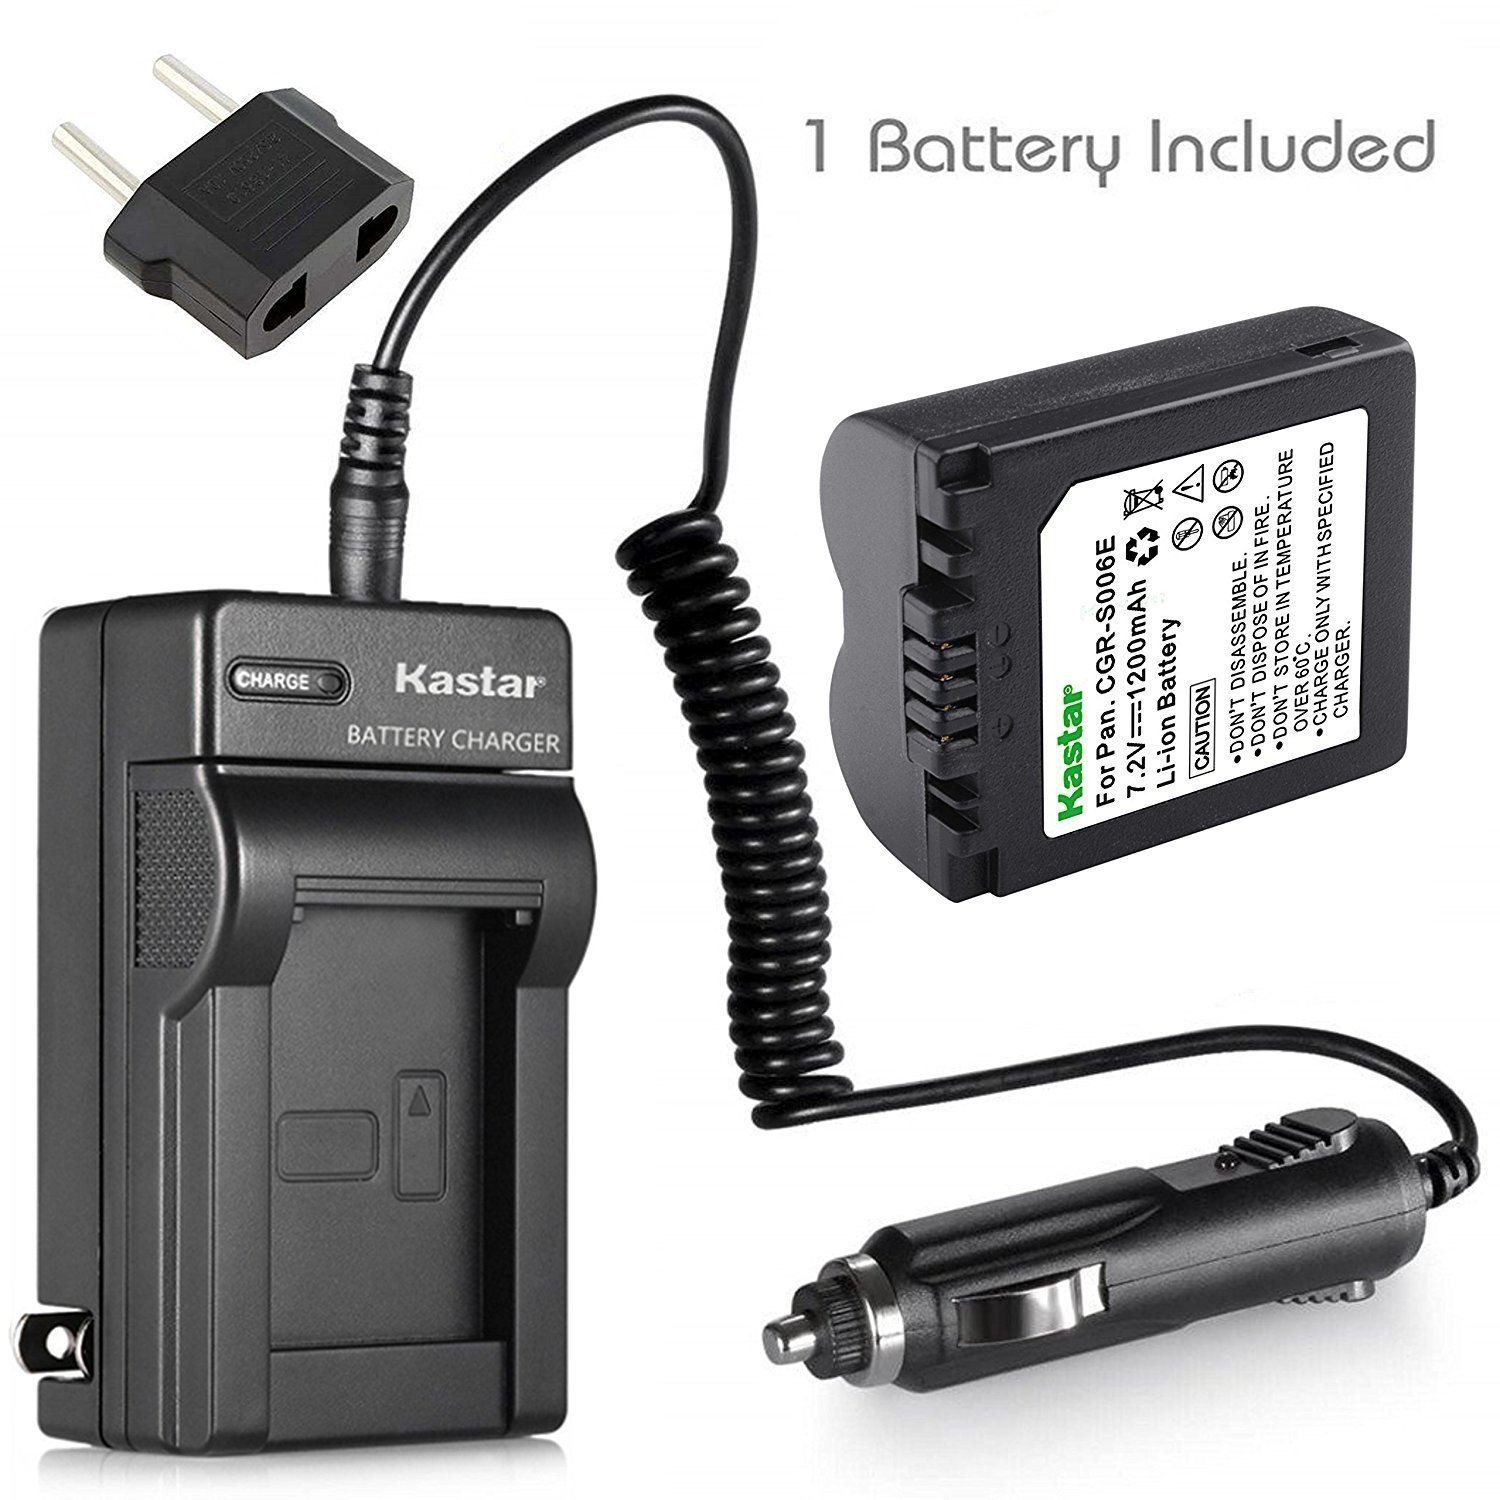 Replacement for Canon 60Da Battery and Charger with Car Plug and EU Adapter Compatible with Canon LP-E6 Digital Camera Batteries and Chargers 1800mAh 7.4V Lithium-Ion